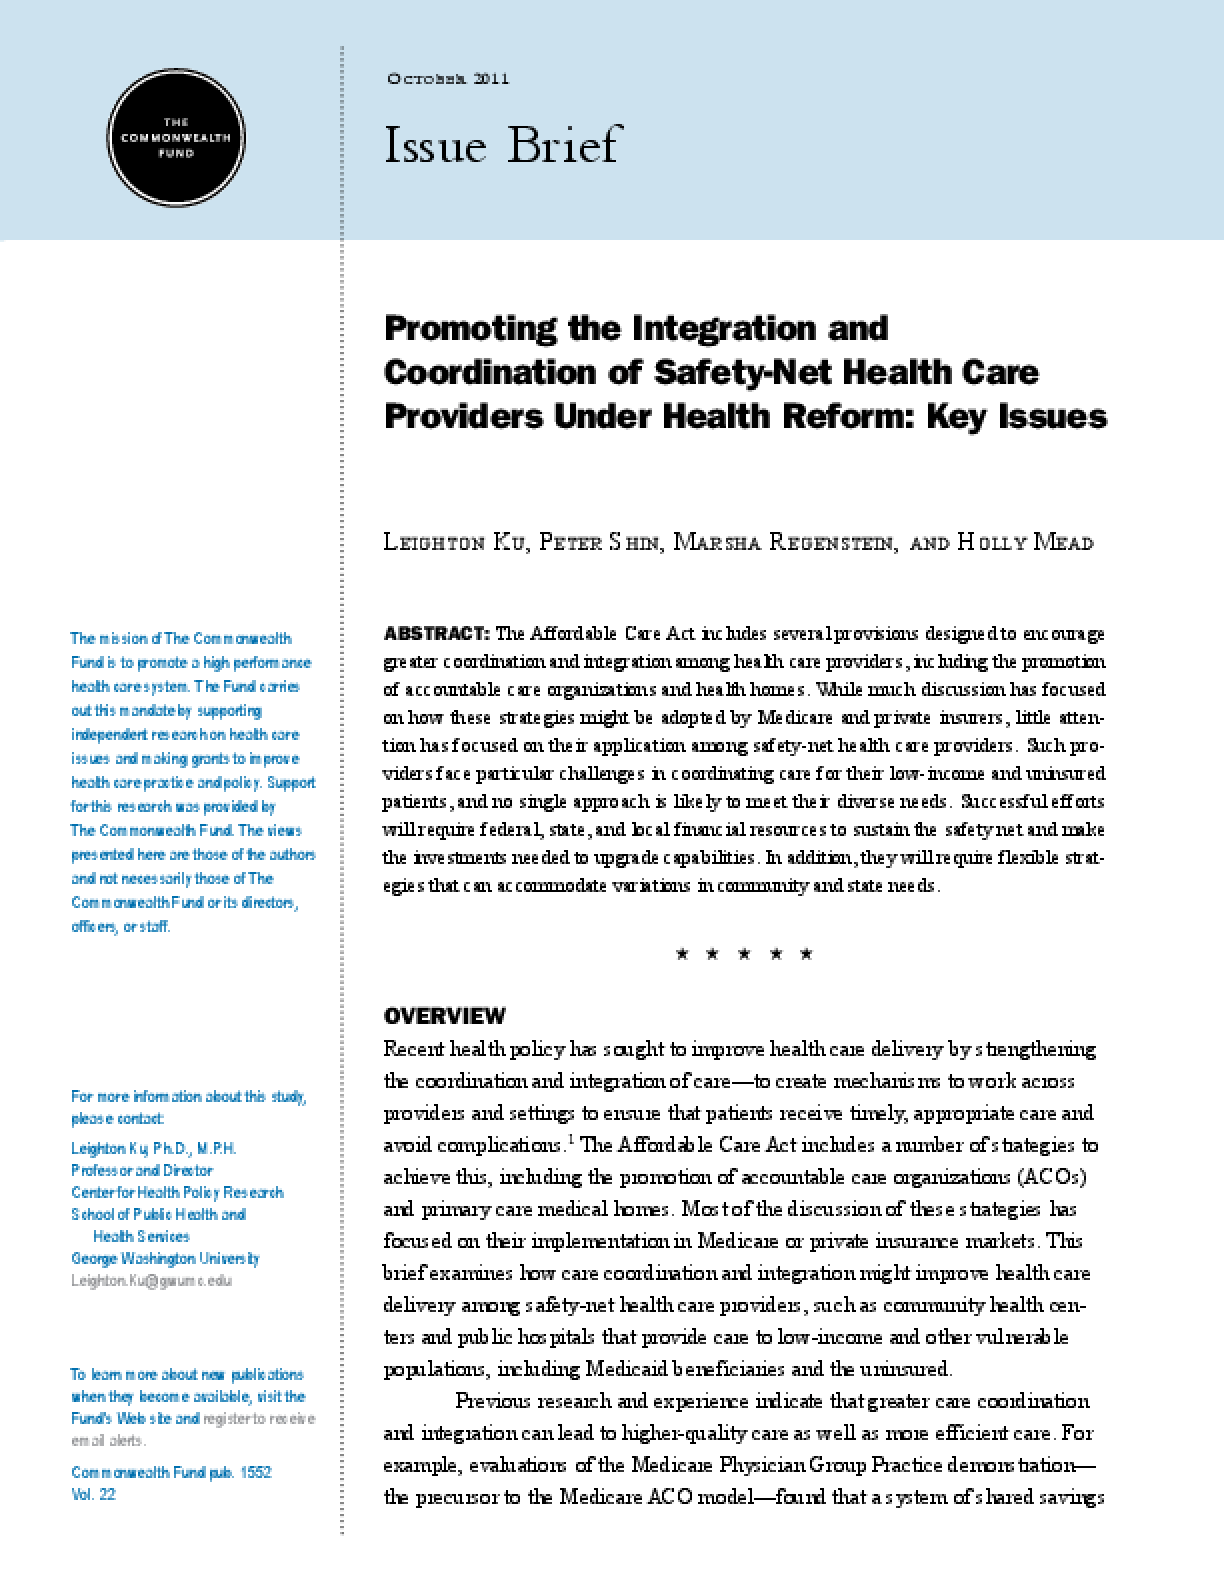 Promoting the Integration and Coordination of Safety-Net Health Care Providers Under Health Reform: Key Issues